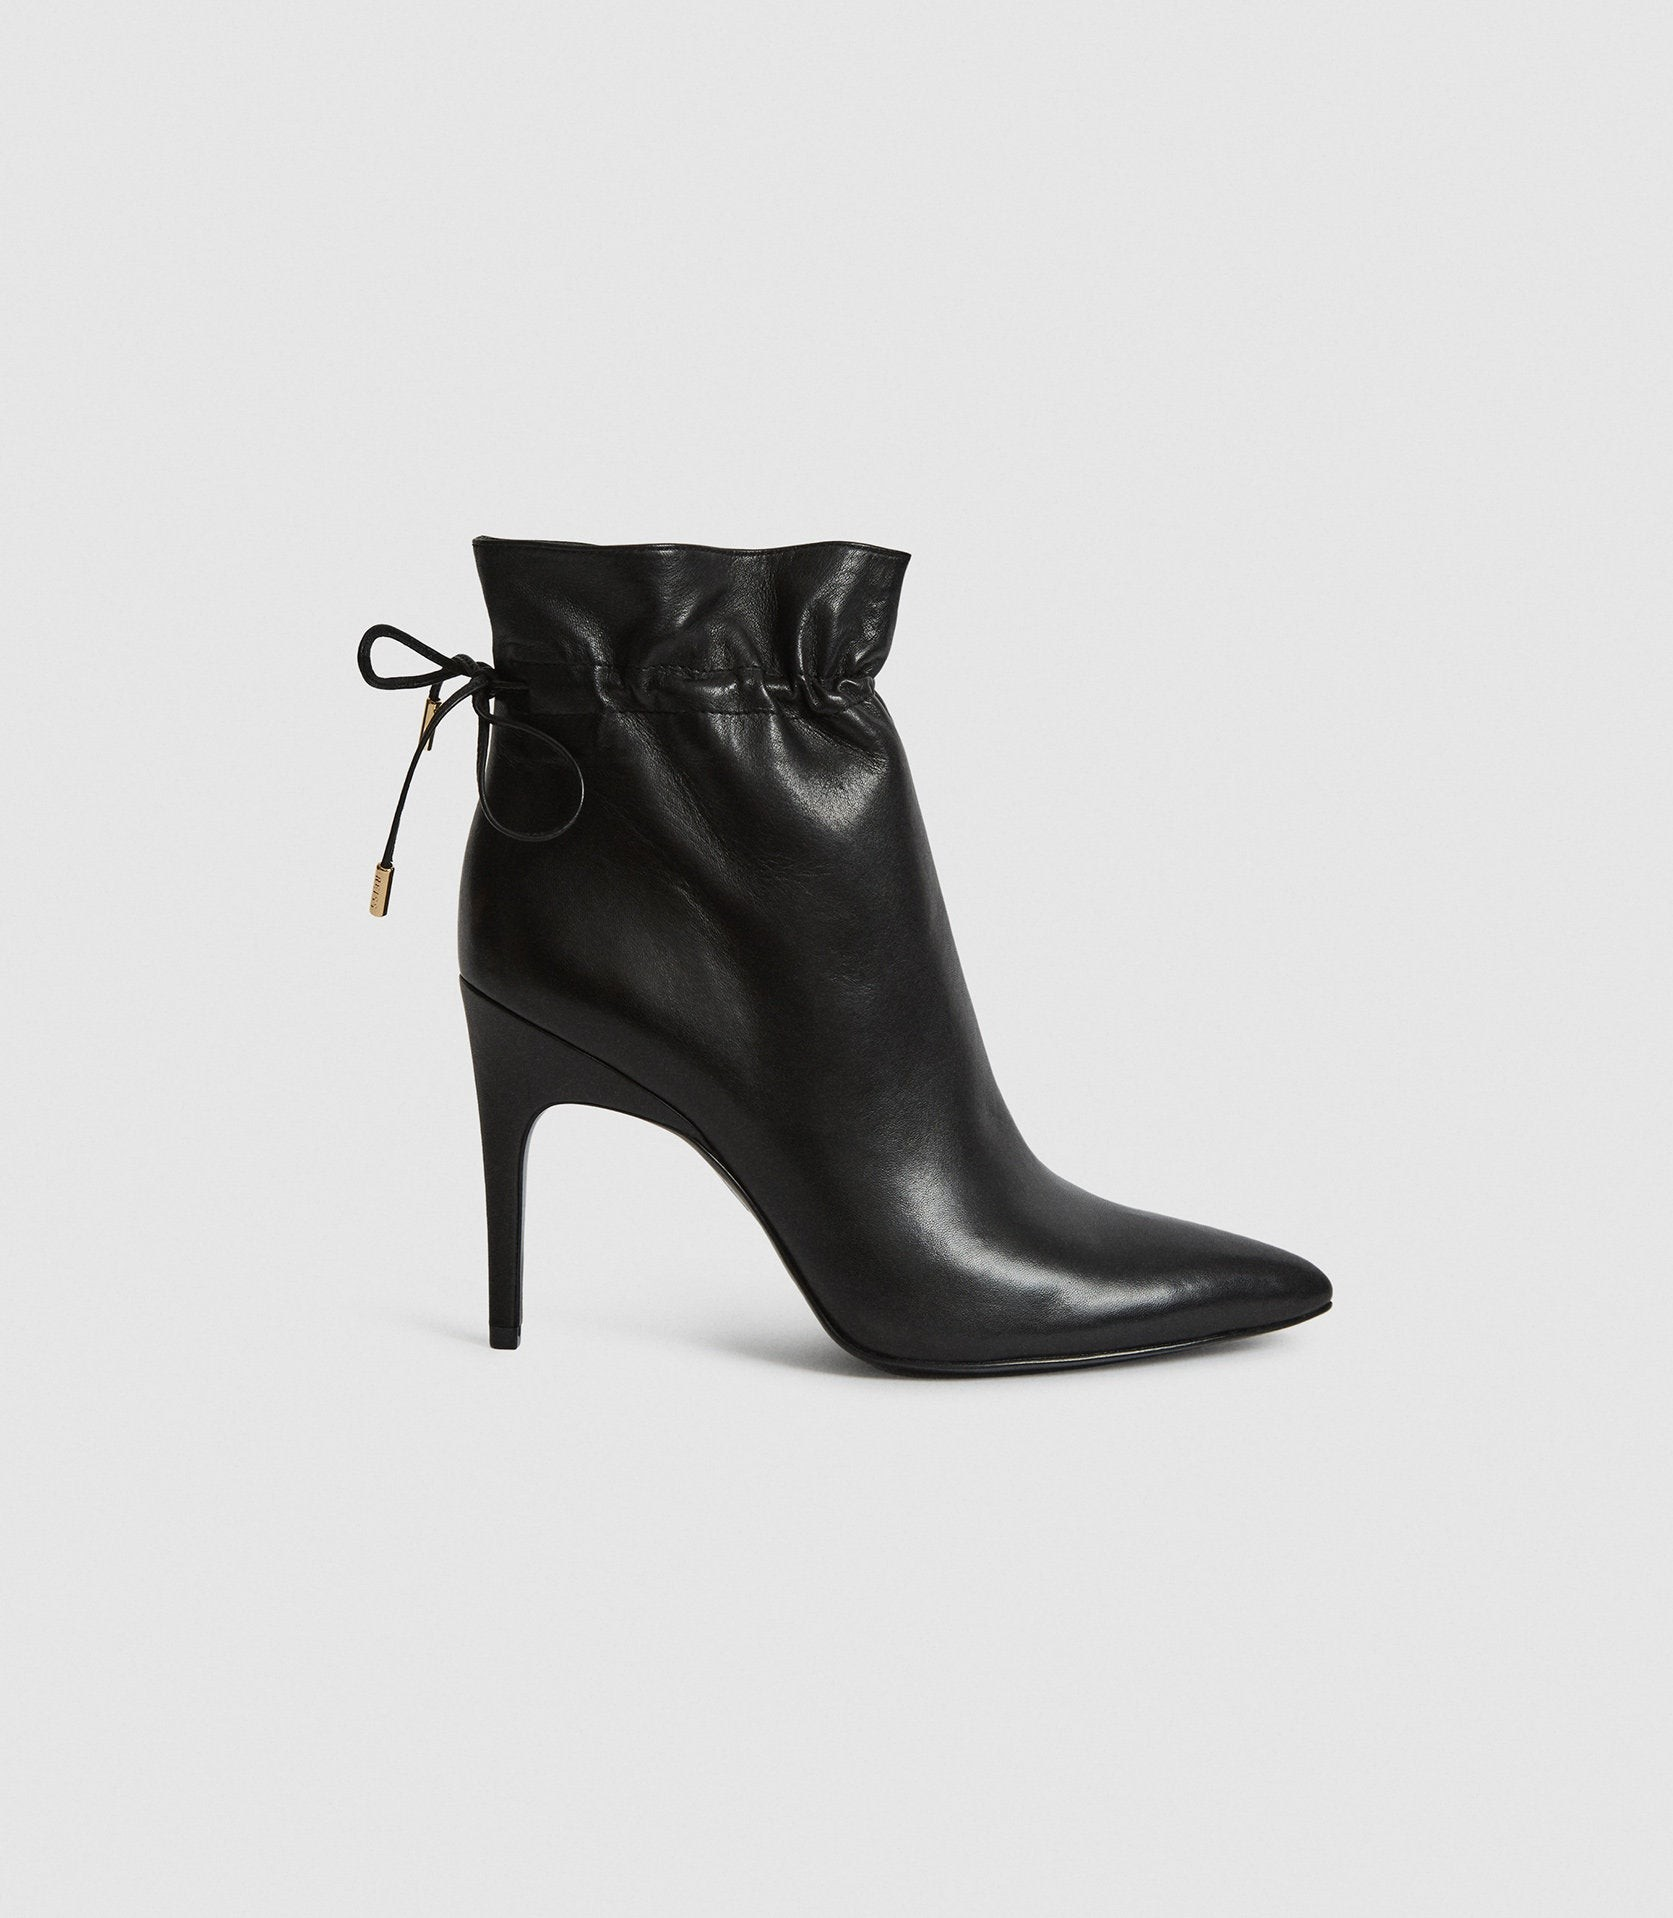 Reiss Russo - Leather Ruched Black, Womens, Size 6 Ankle Boot